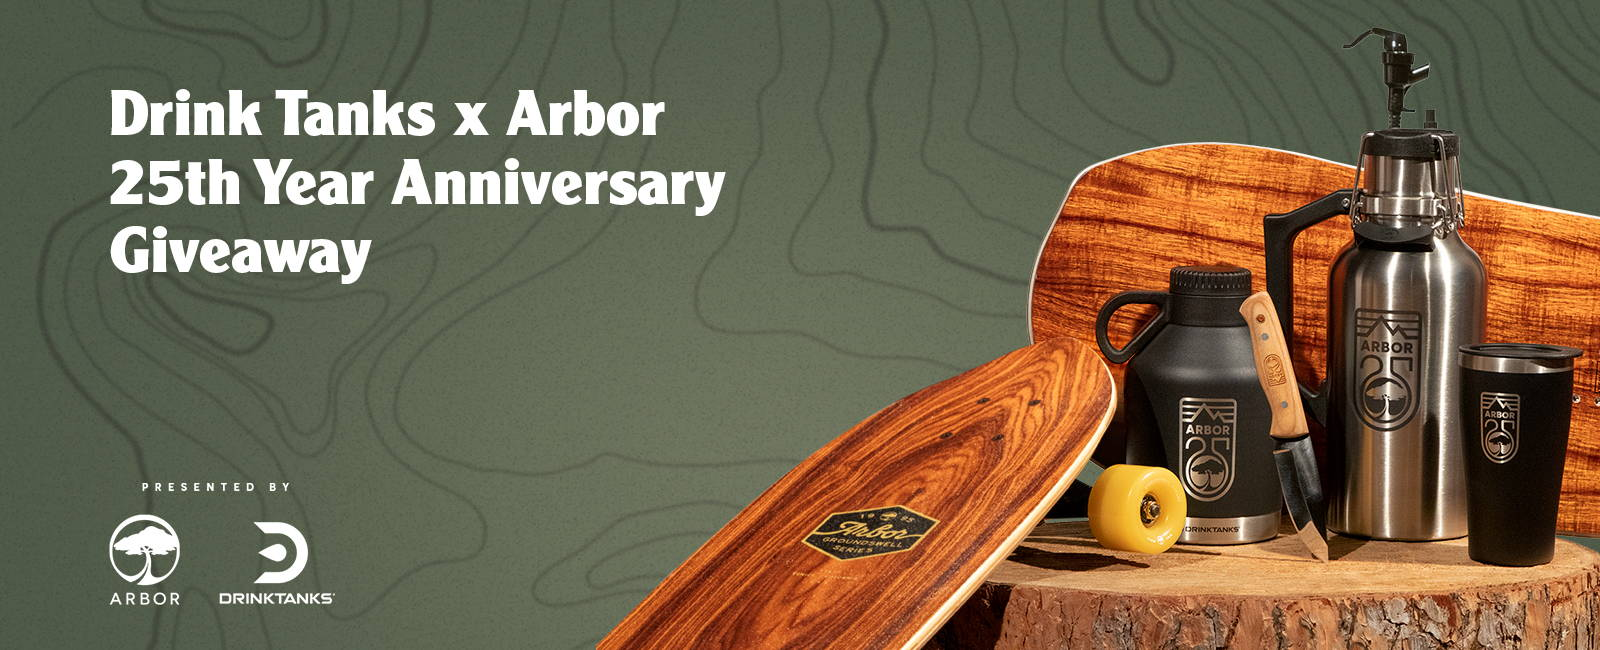 Drink Tanks x Arbor 25th Year Anniversary Giveaway Presented by Arbor and Drinktanks. Prizes pictured